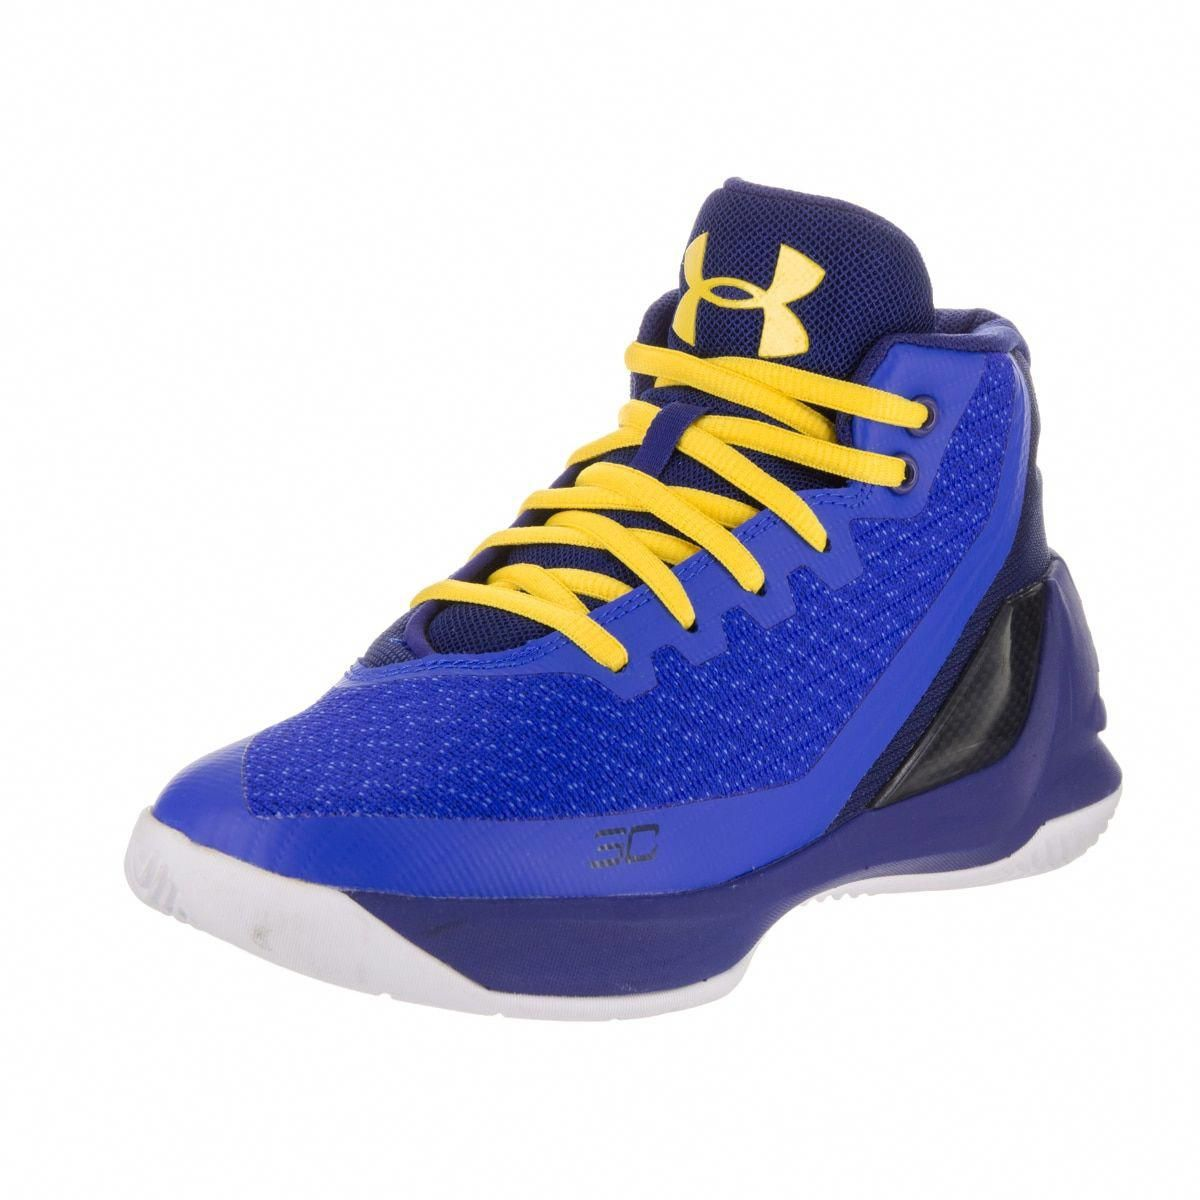 best service 69330 f7997 Watch your little one score in these kids  Under Armour basketball shoes. The  basketball